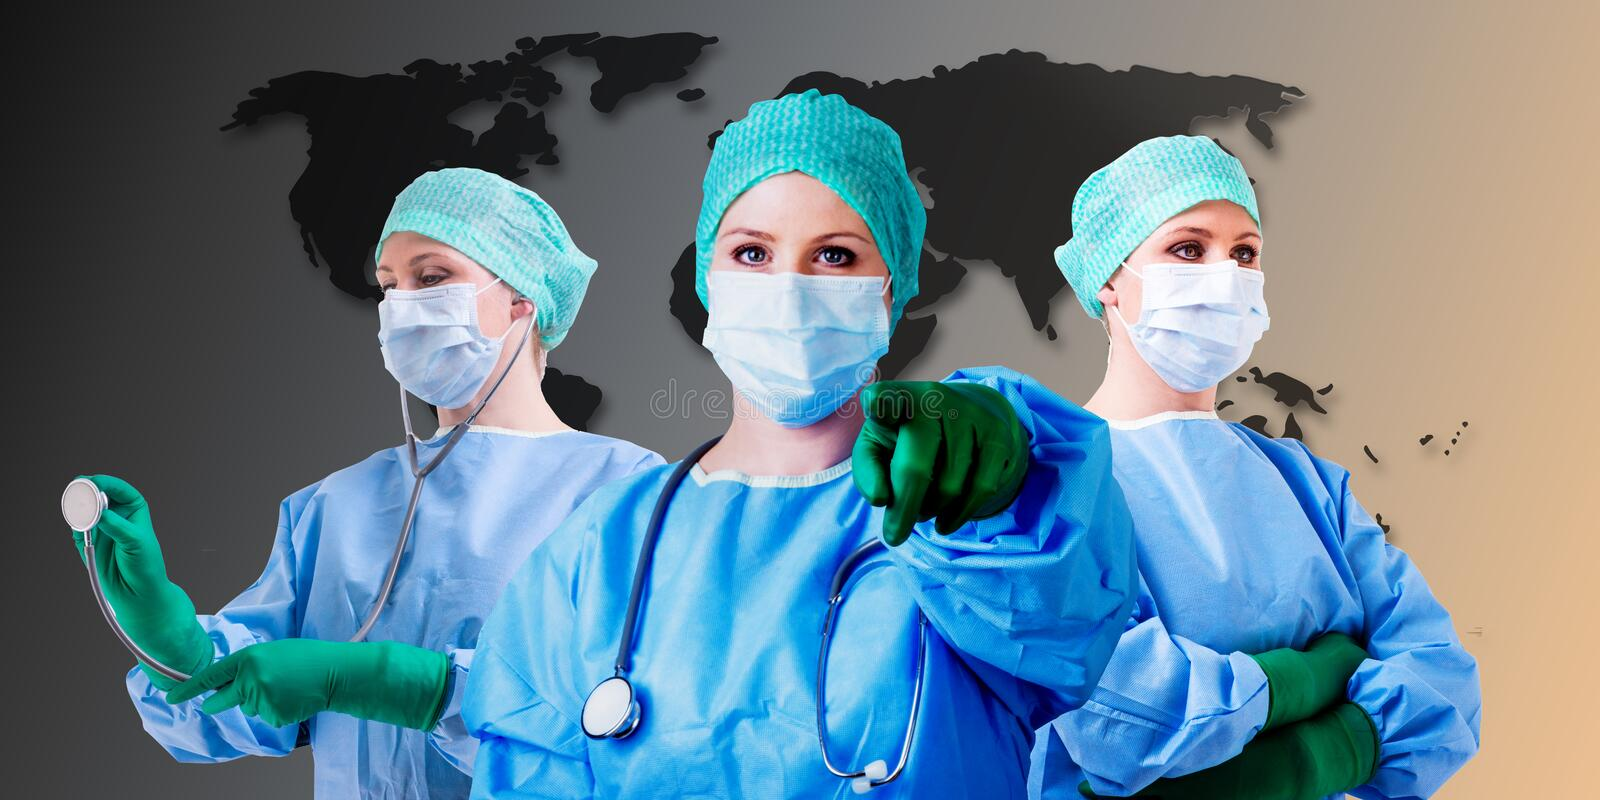 Medical female doctor world map. Female medical docotr background is a world map stock photo